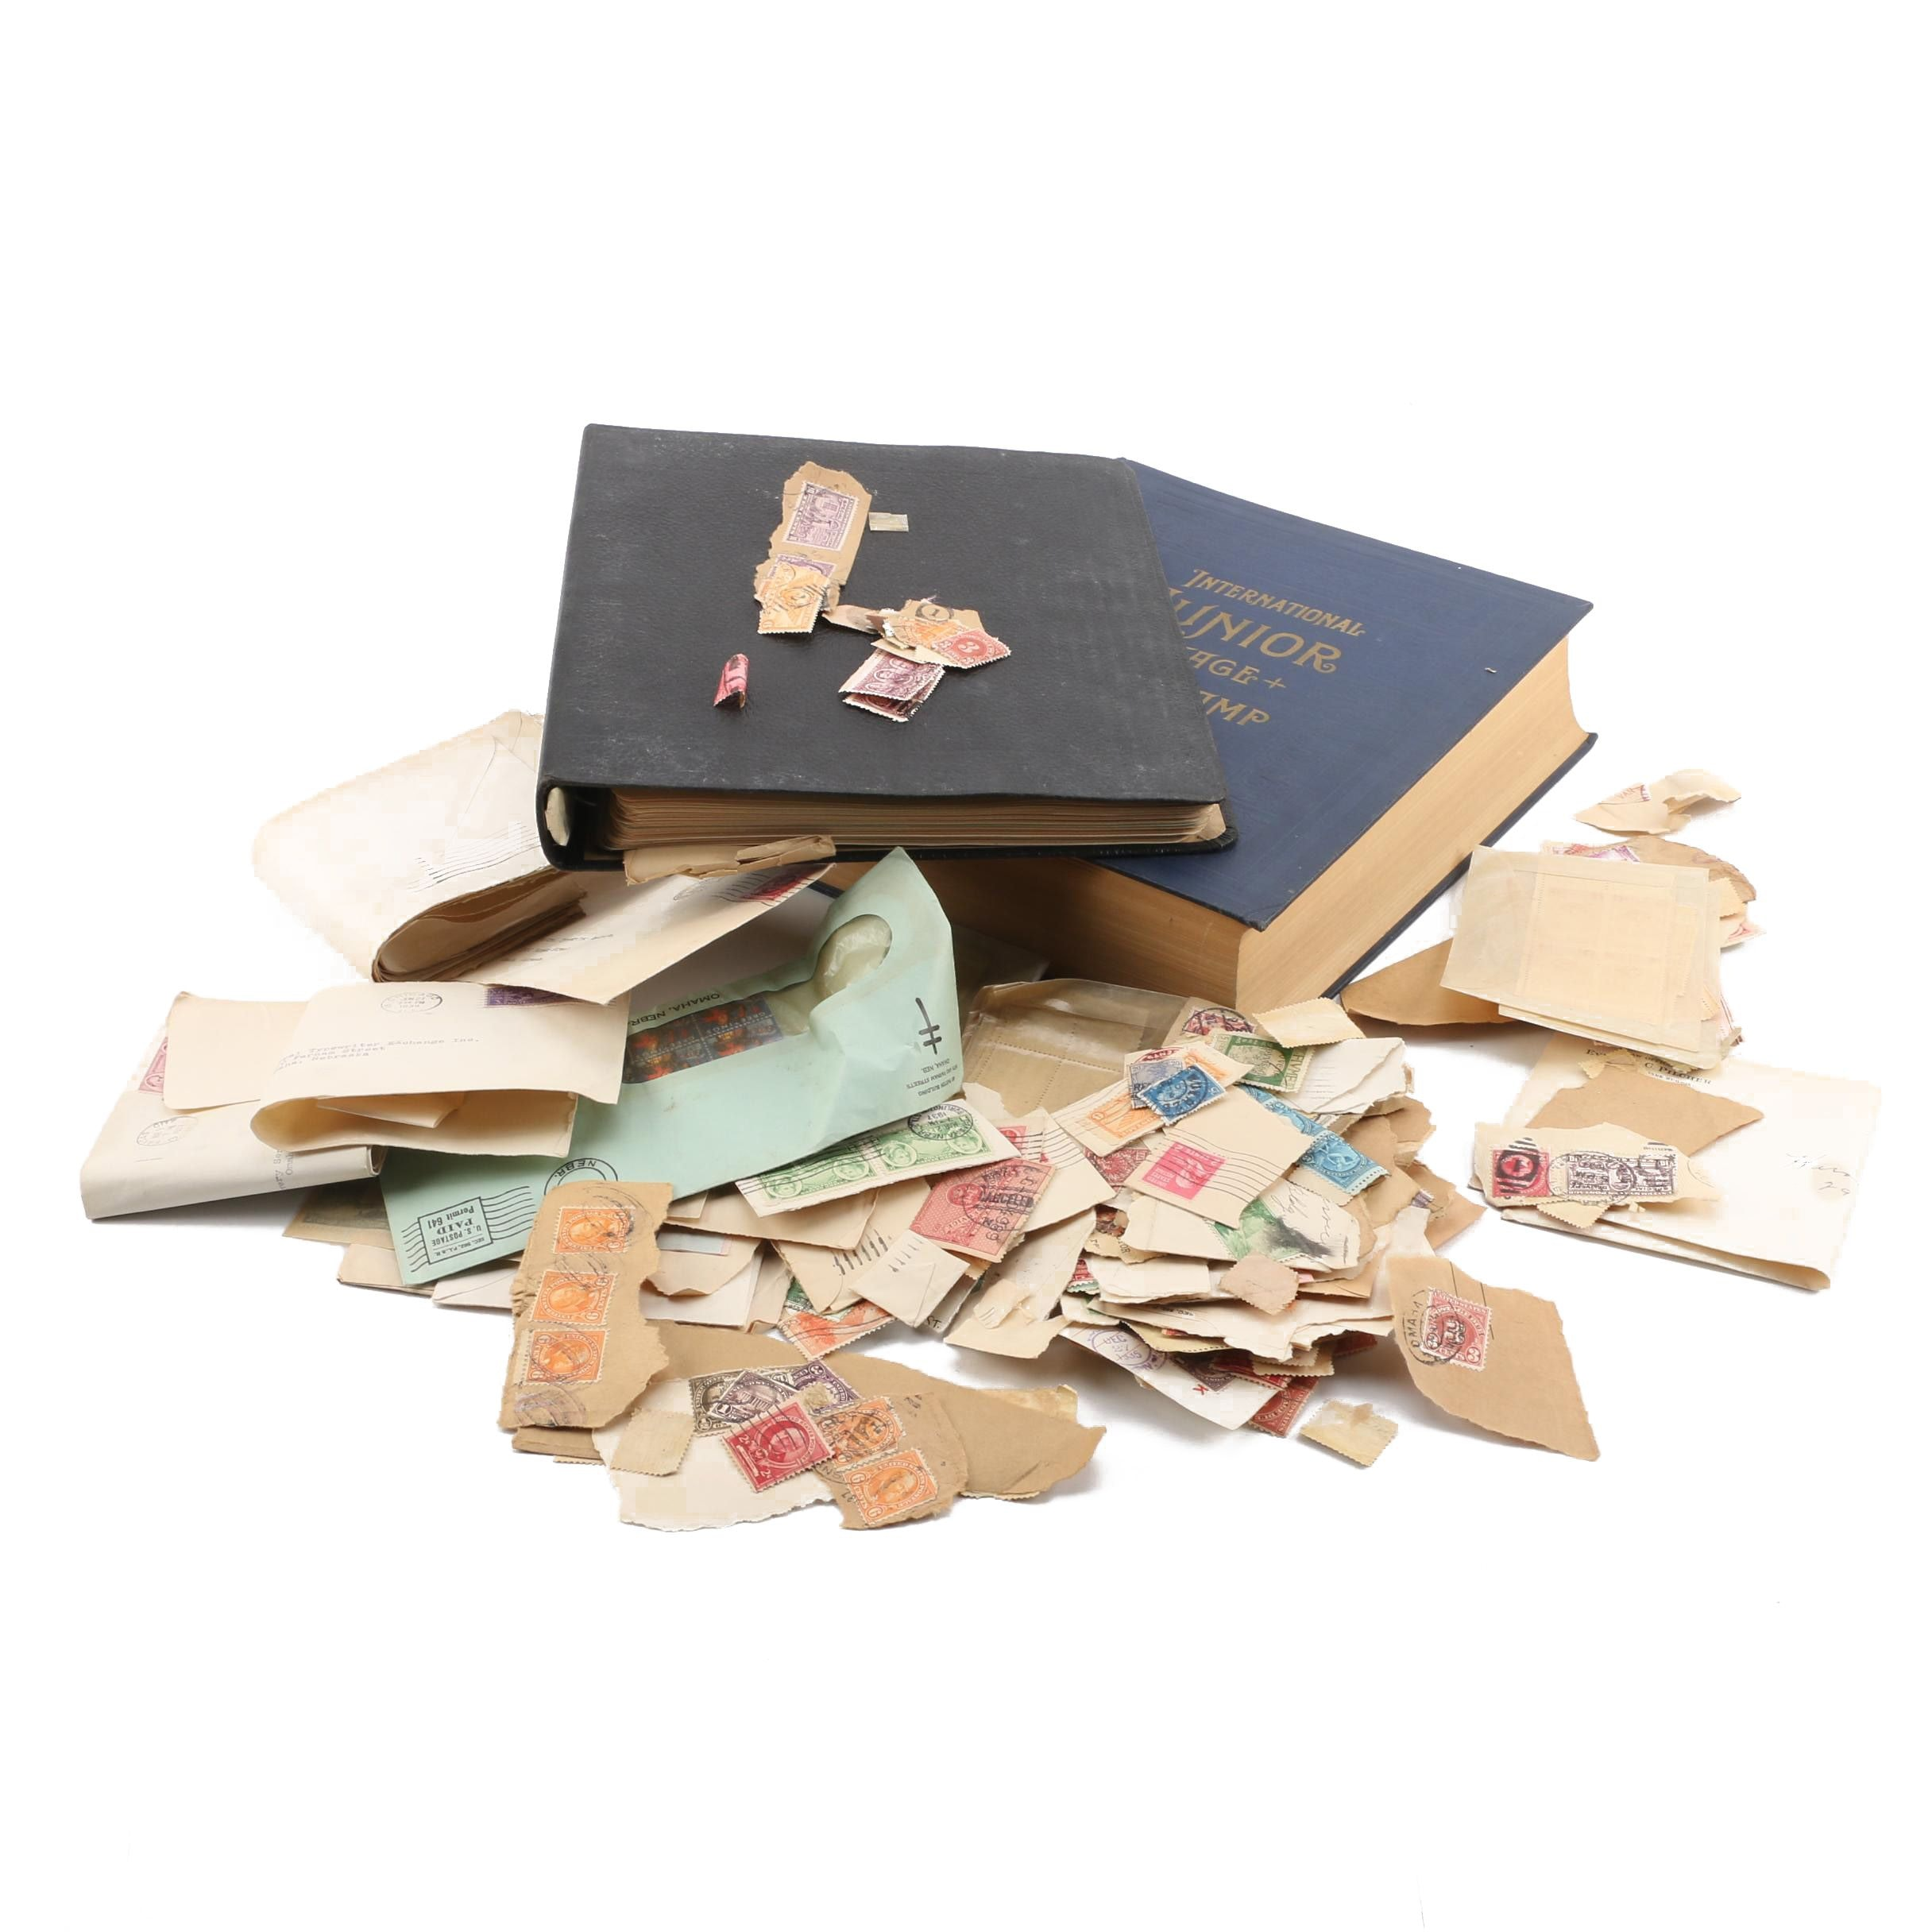 Loose Vintage Stamp Collection with Two Vintage Albums